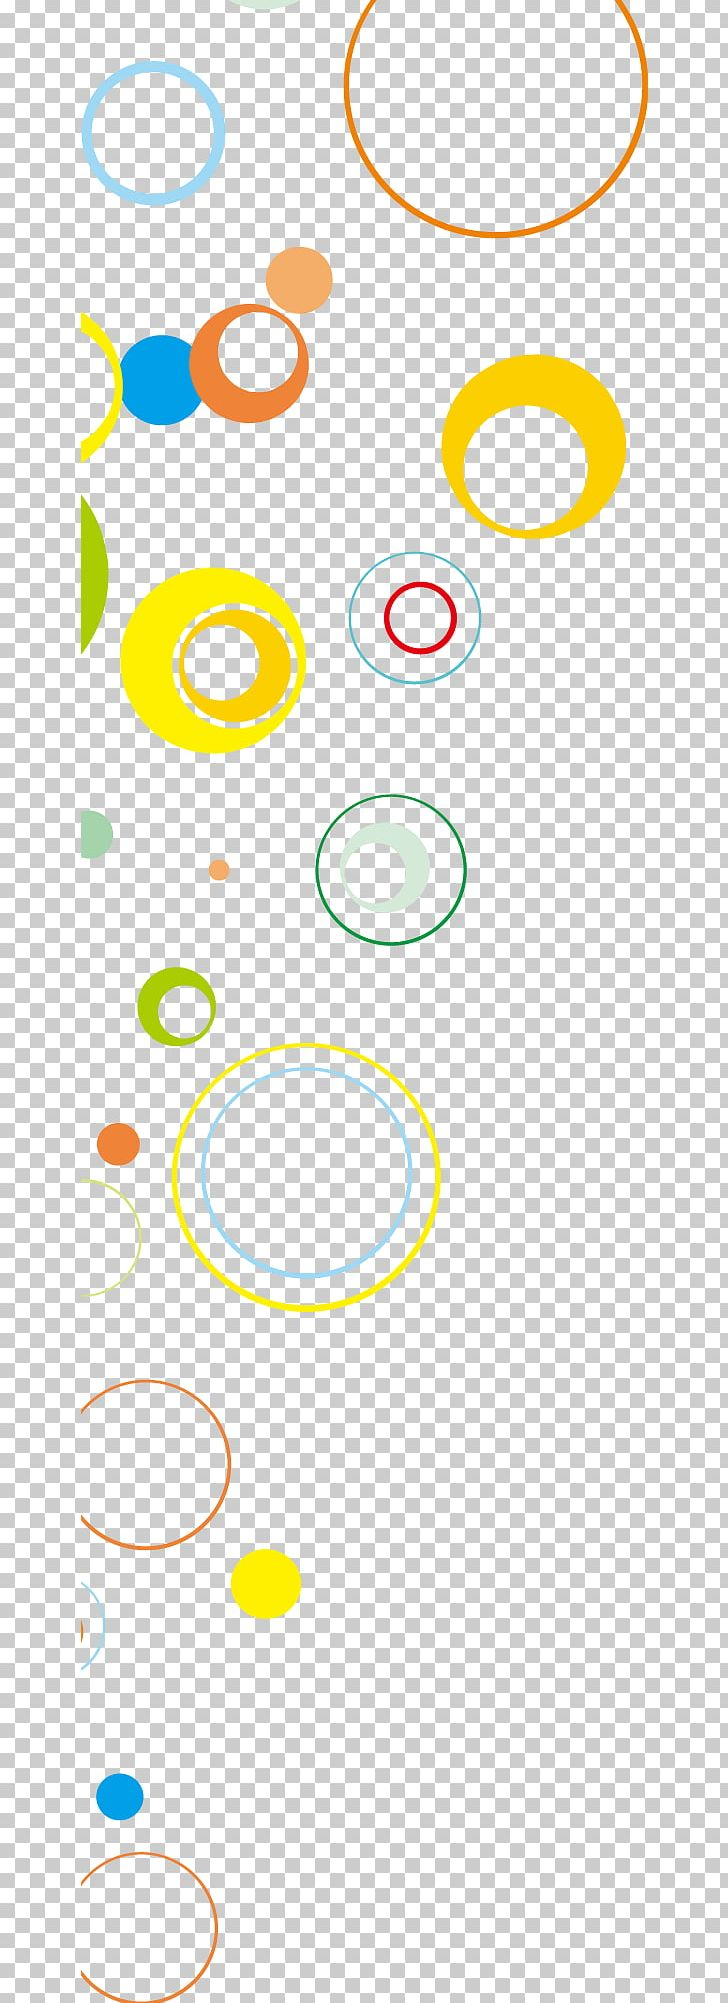 Creative Business Card Circle Color Shading PNG, Clipart, Angle, Area, Birthday Card, Border Texture, Business Card Free PNG Download